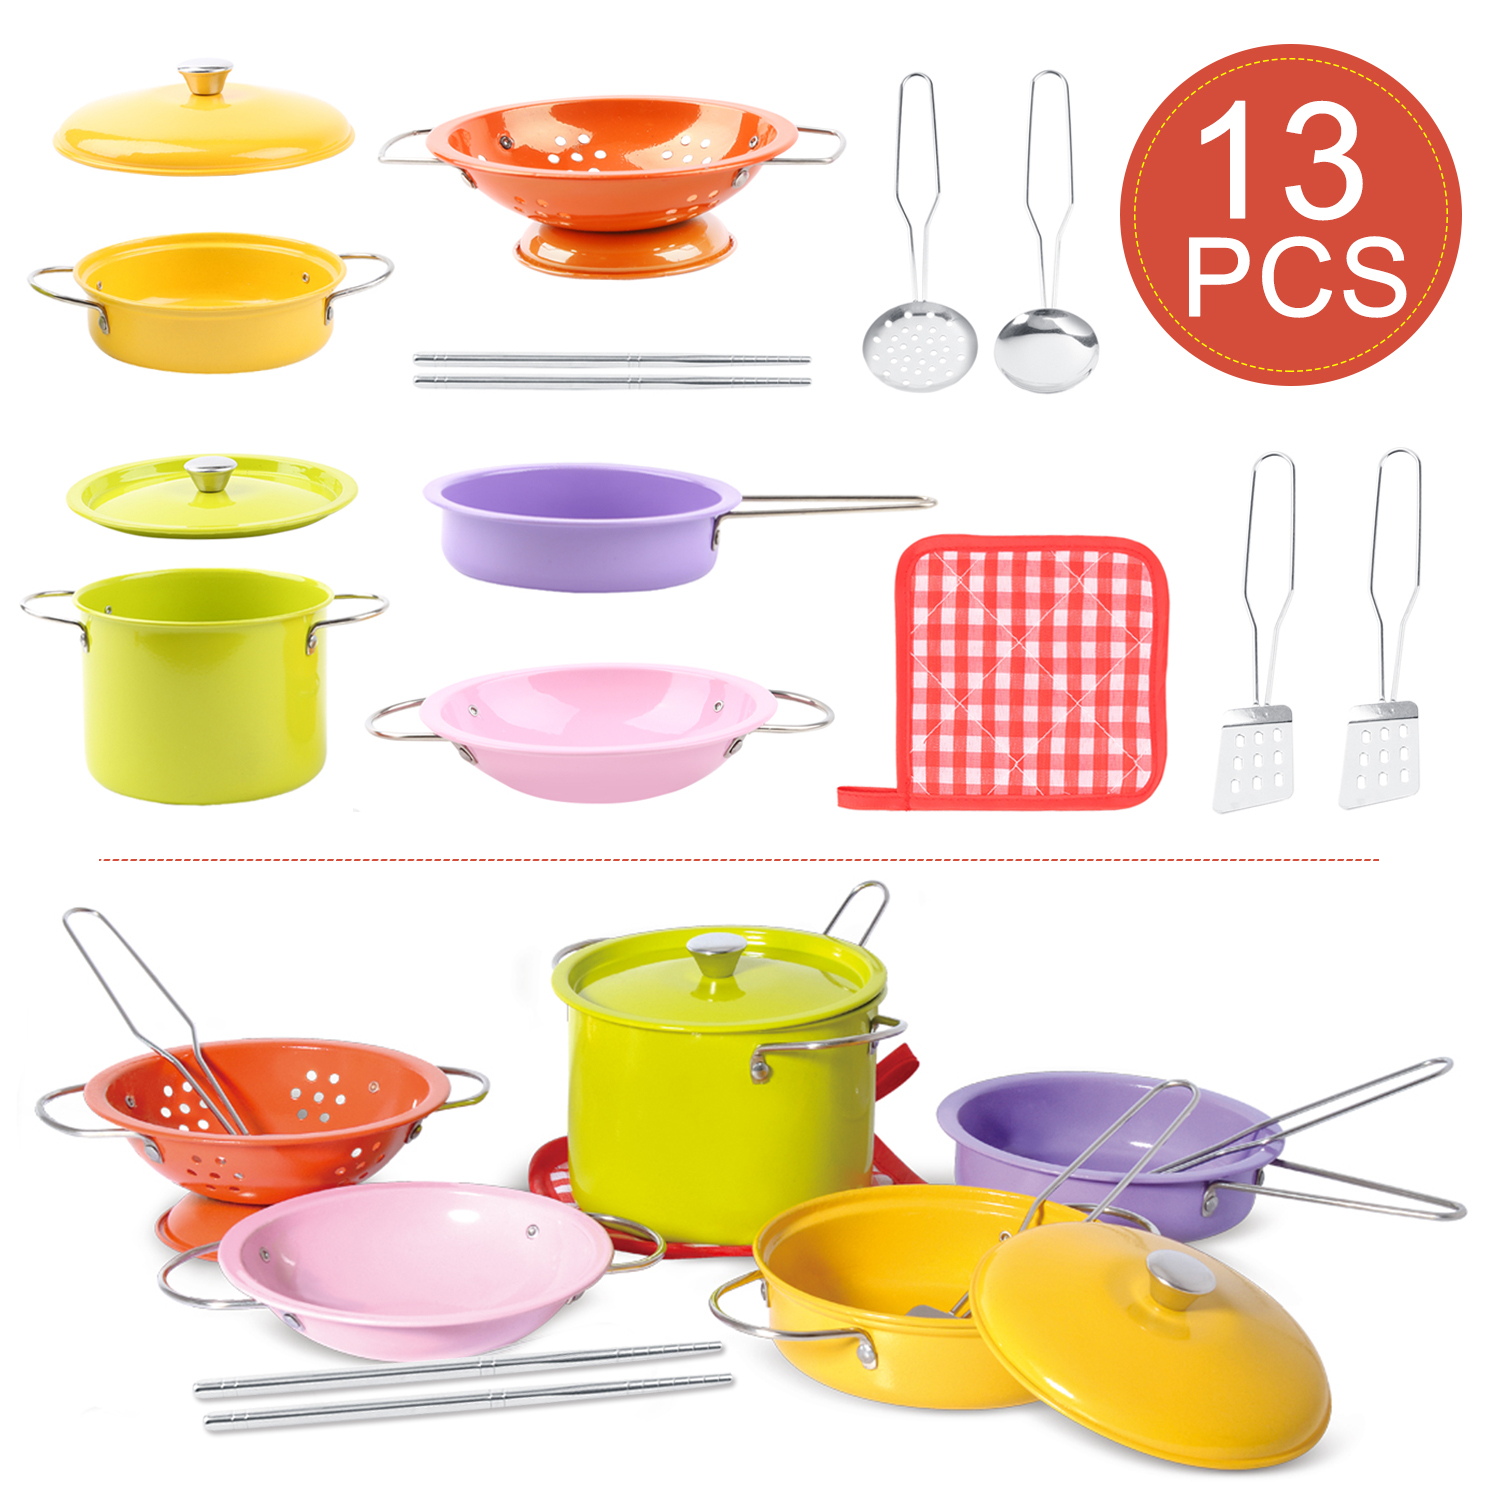 13PCS Educational Colorful Pretend Play Kitchen Toy Stainless Steel Kitchenware Pot, Chopsticks,Dish Set For Kid